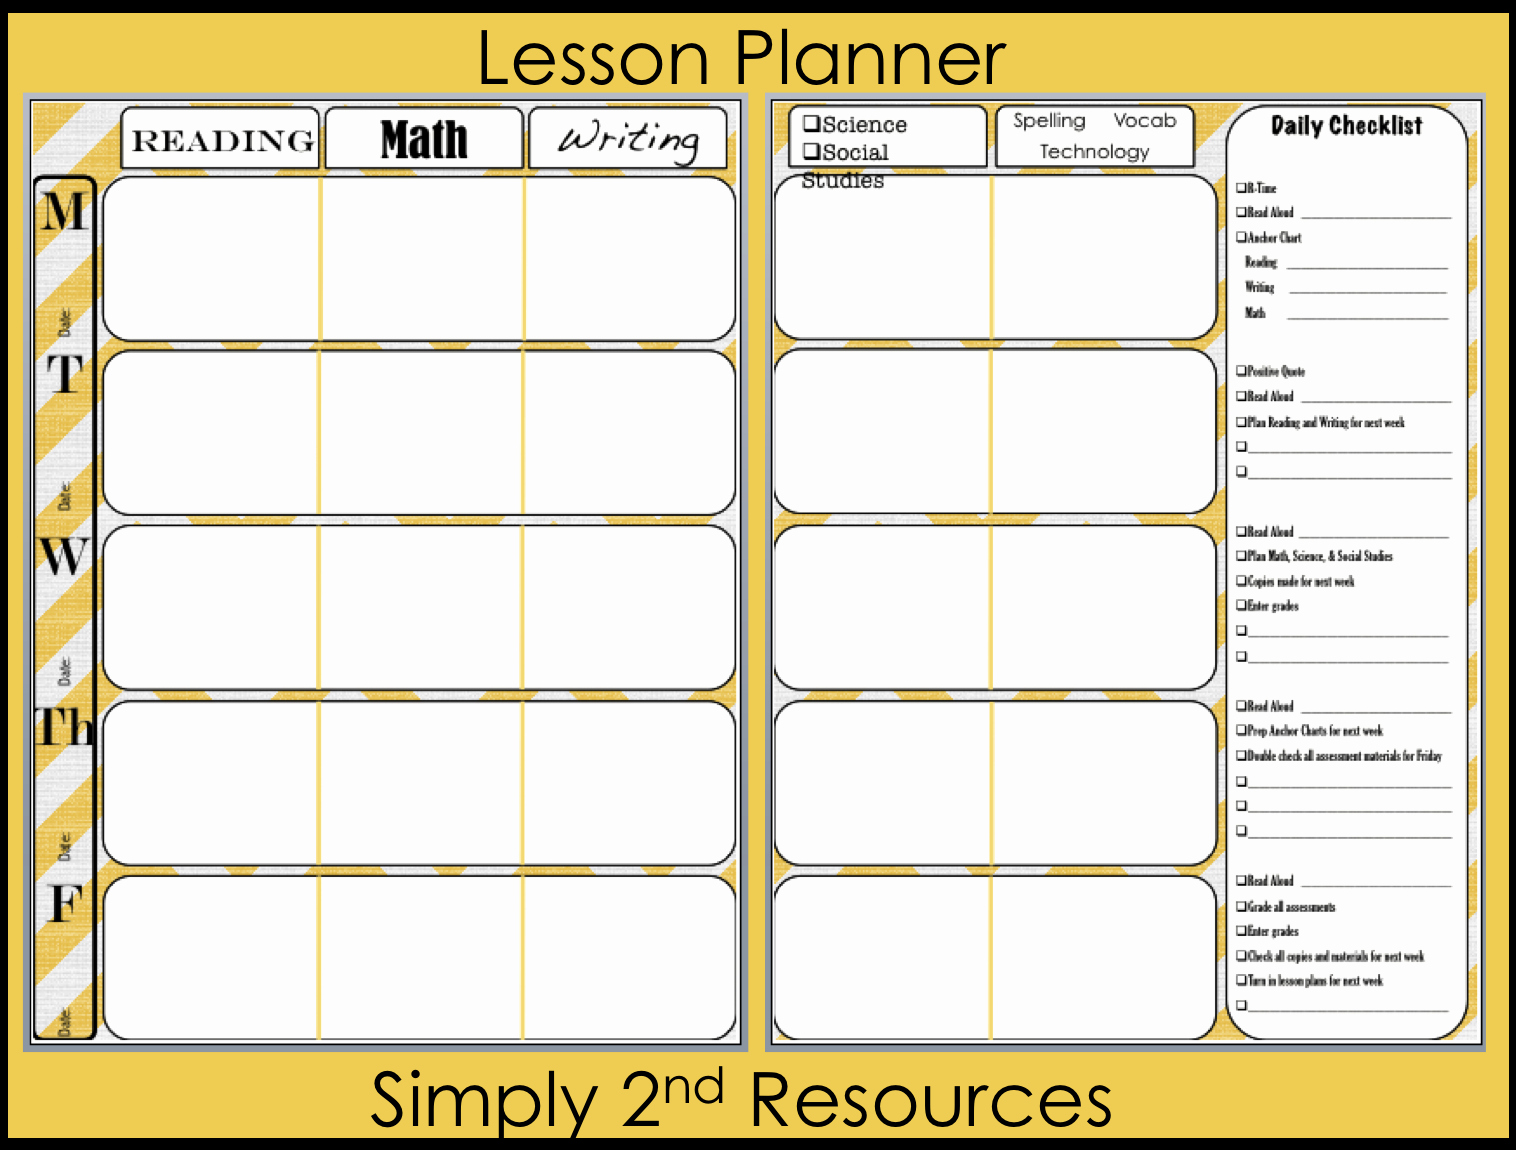 Teachers Planning Book Template Elegant Lesson Plan Book Template Printable